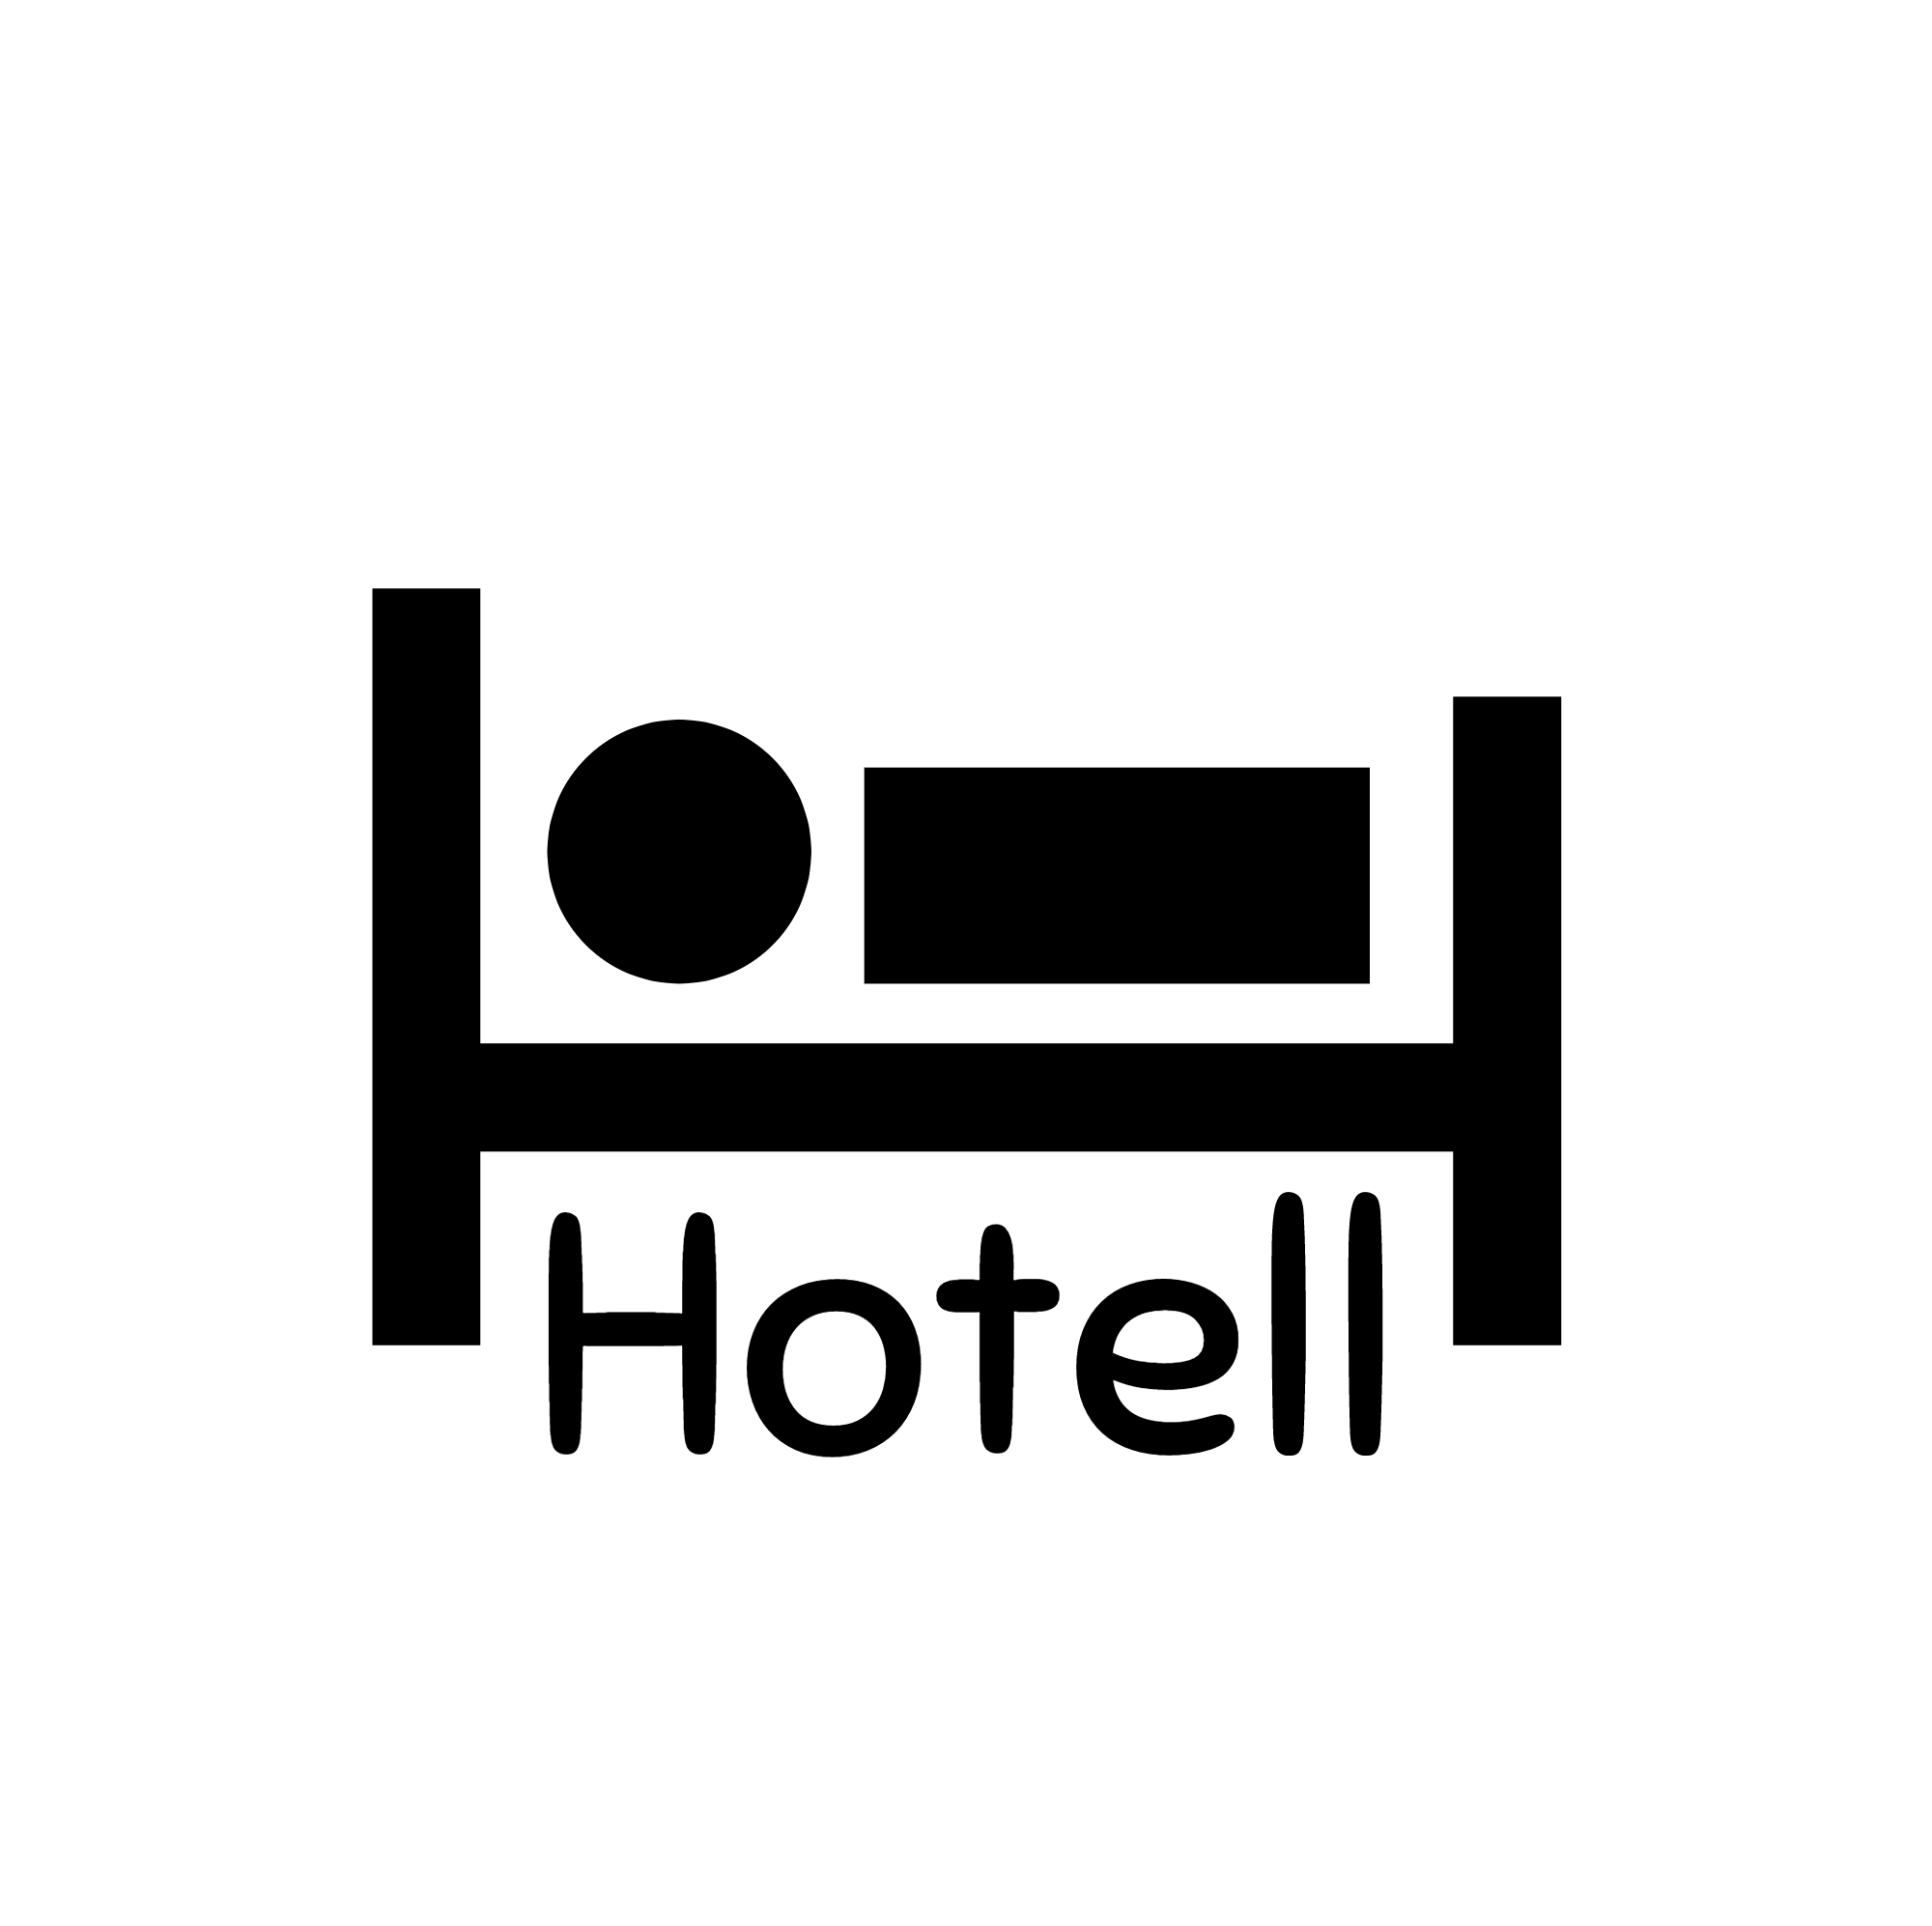 Hotell-logo-black.png